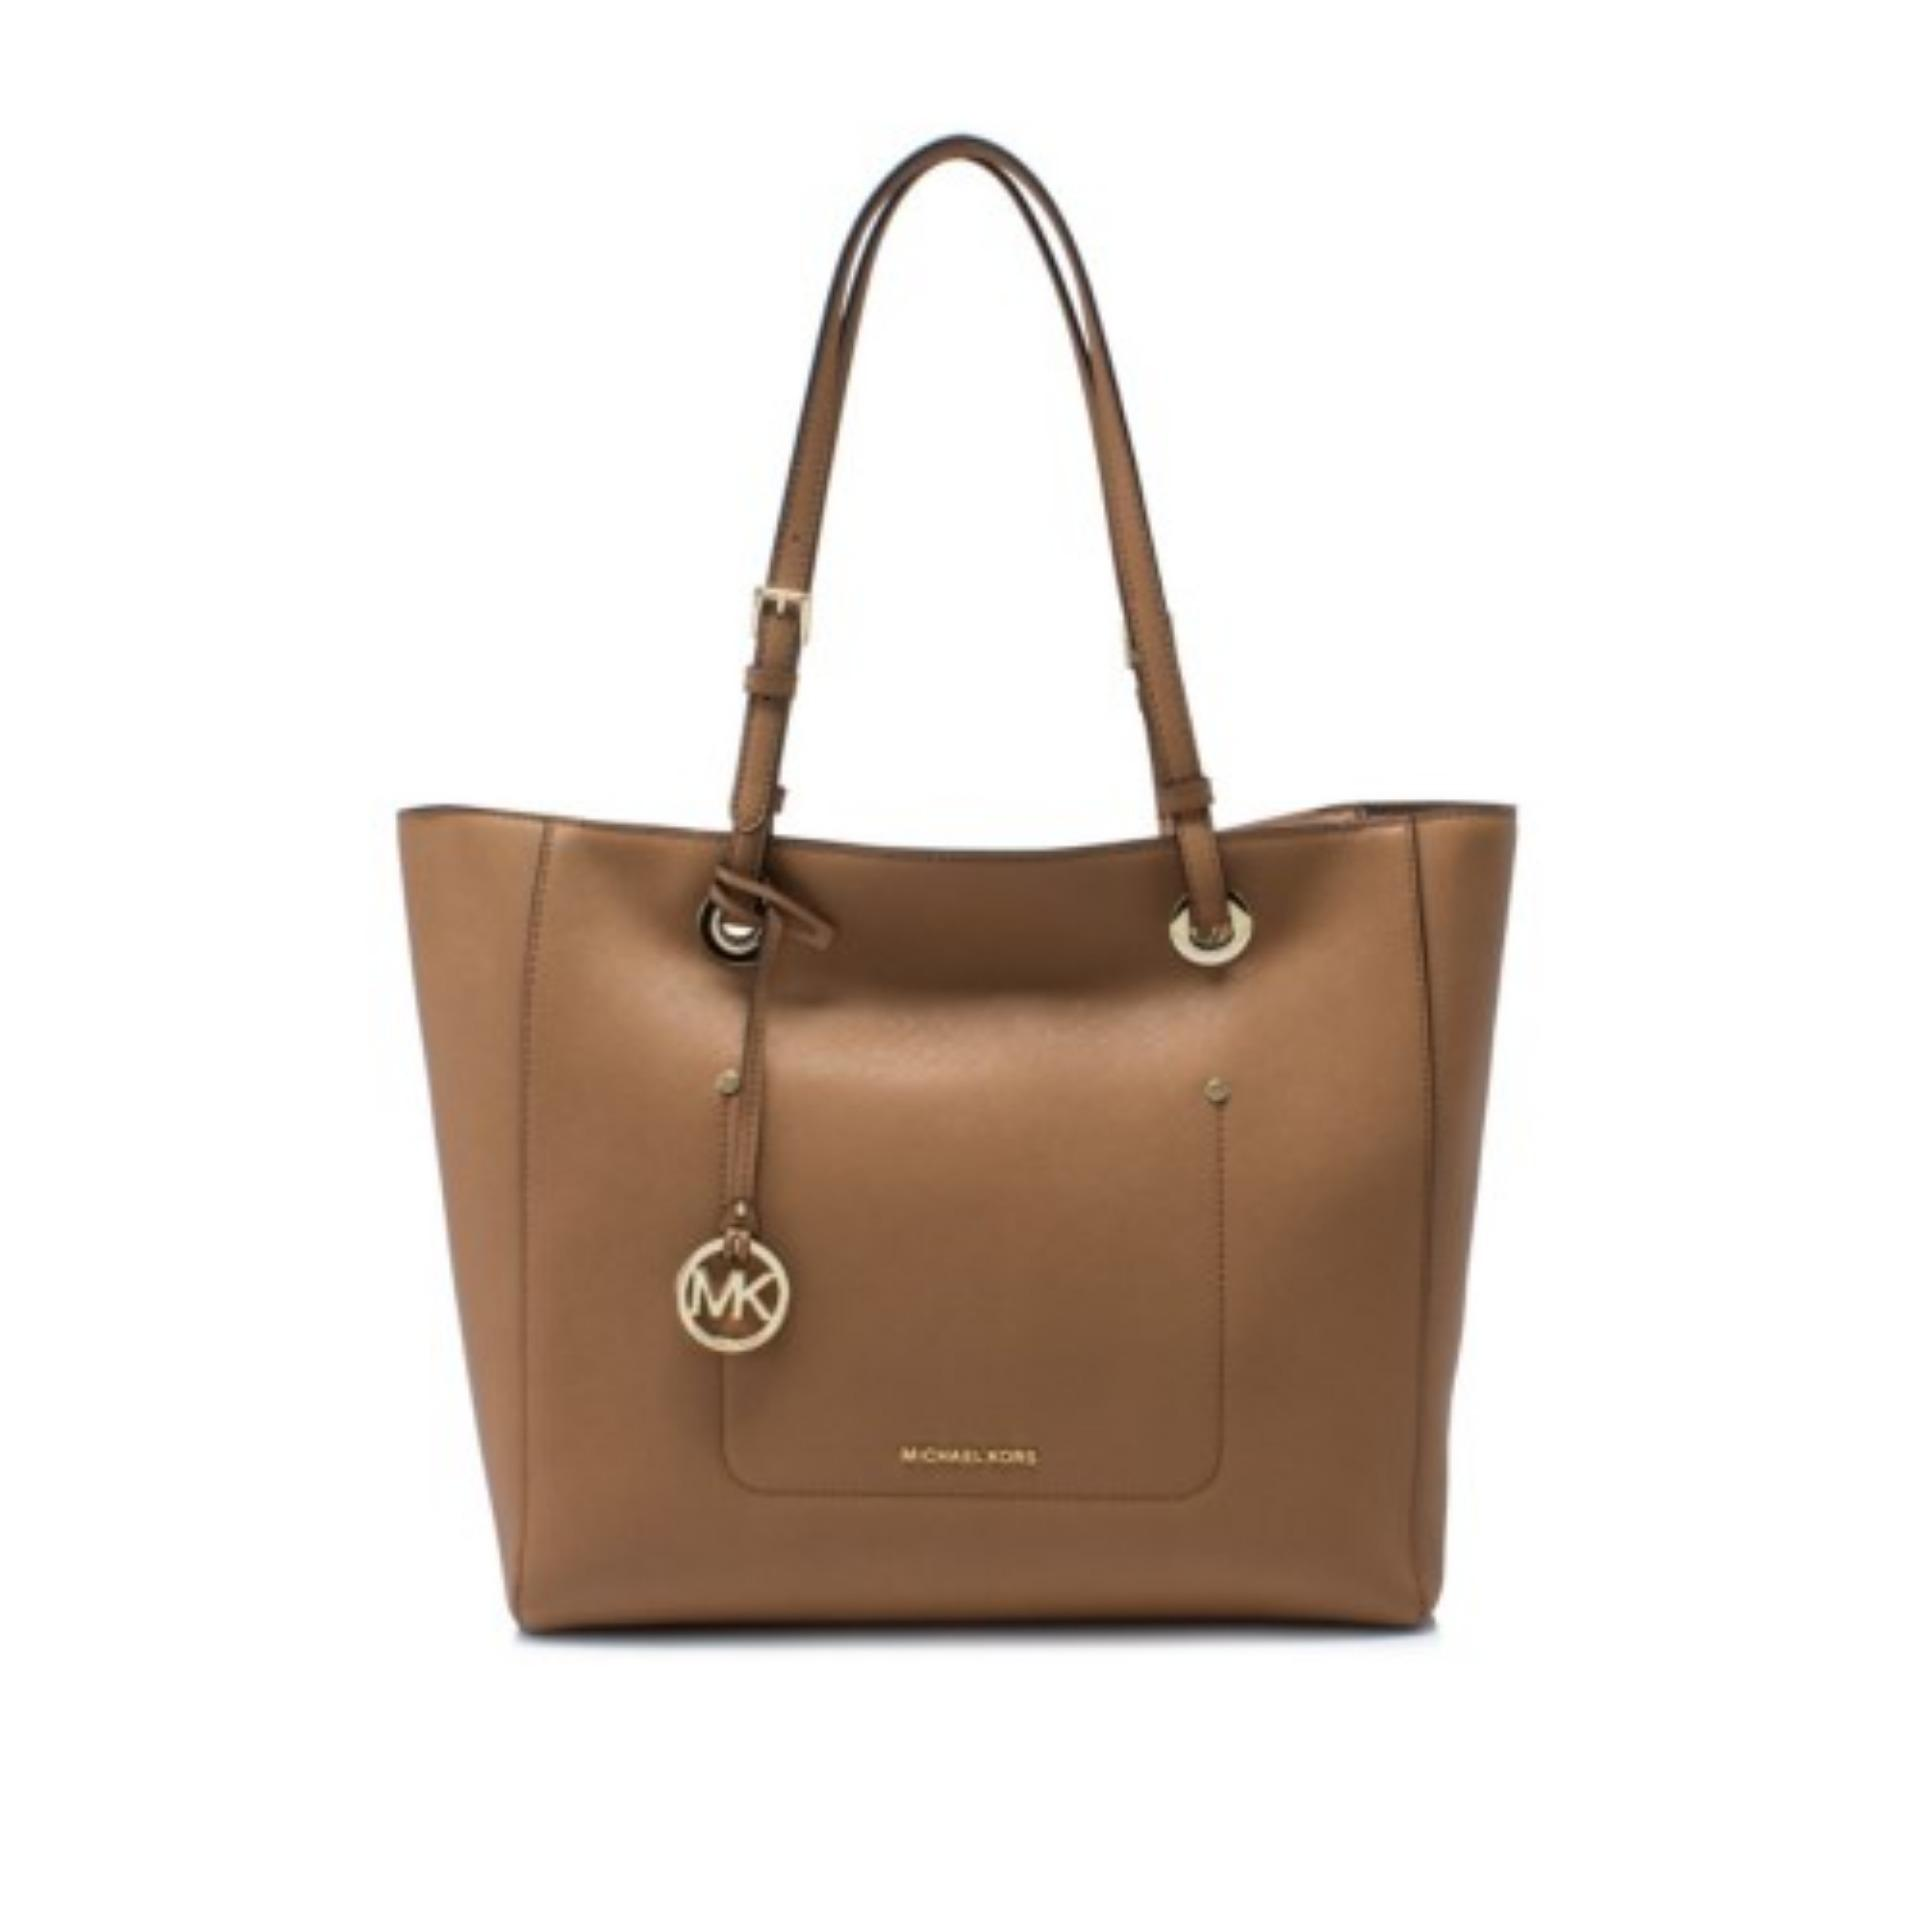 9b8956a5bf19 Michael Kors Walsh Large East West Top Zip Tote Bag (Acorn)    30S7GWAT4LACORN